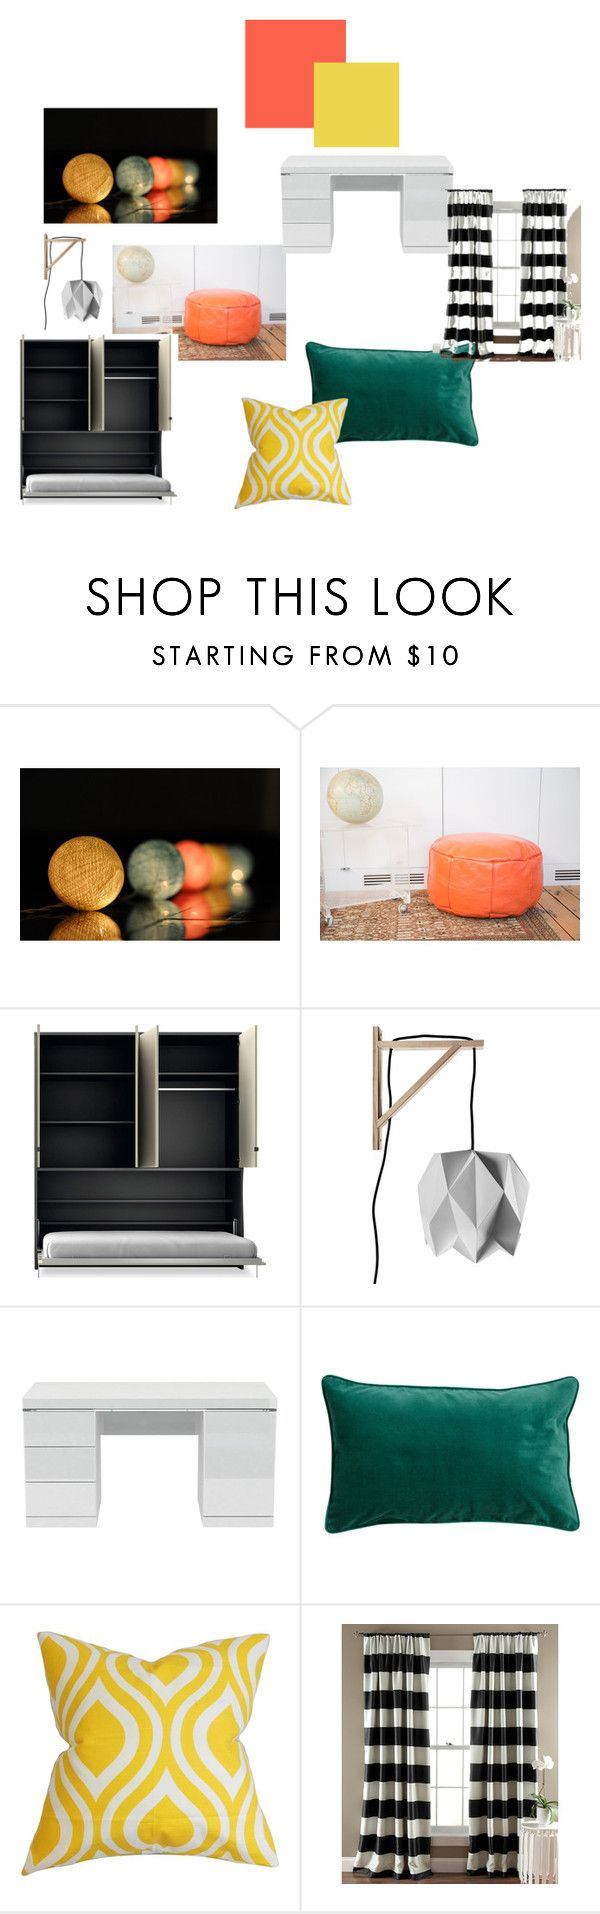 """""""koncepcja 2"""" by magdalena-grycz on Polyvore featuring interior, interiors, interior design, dom, home decor, interior decorating, Along Came the Fold, H&M, The Pillow Collection i Lush Décor"""